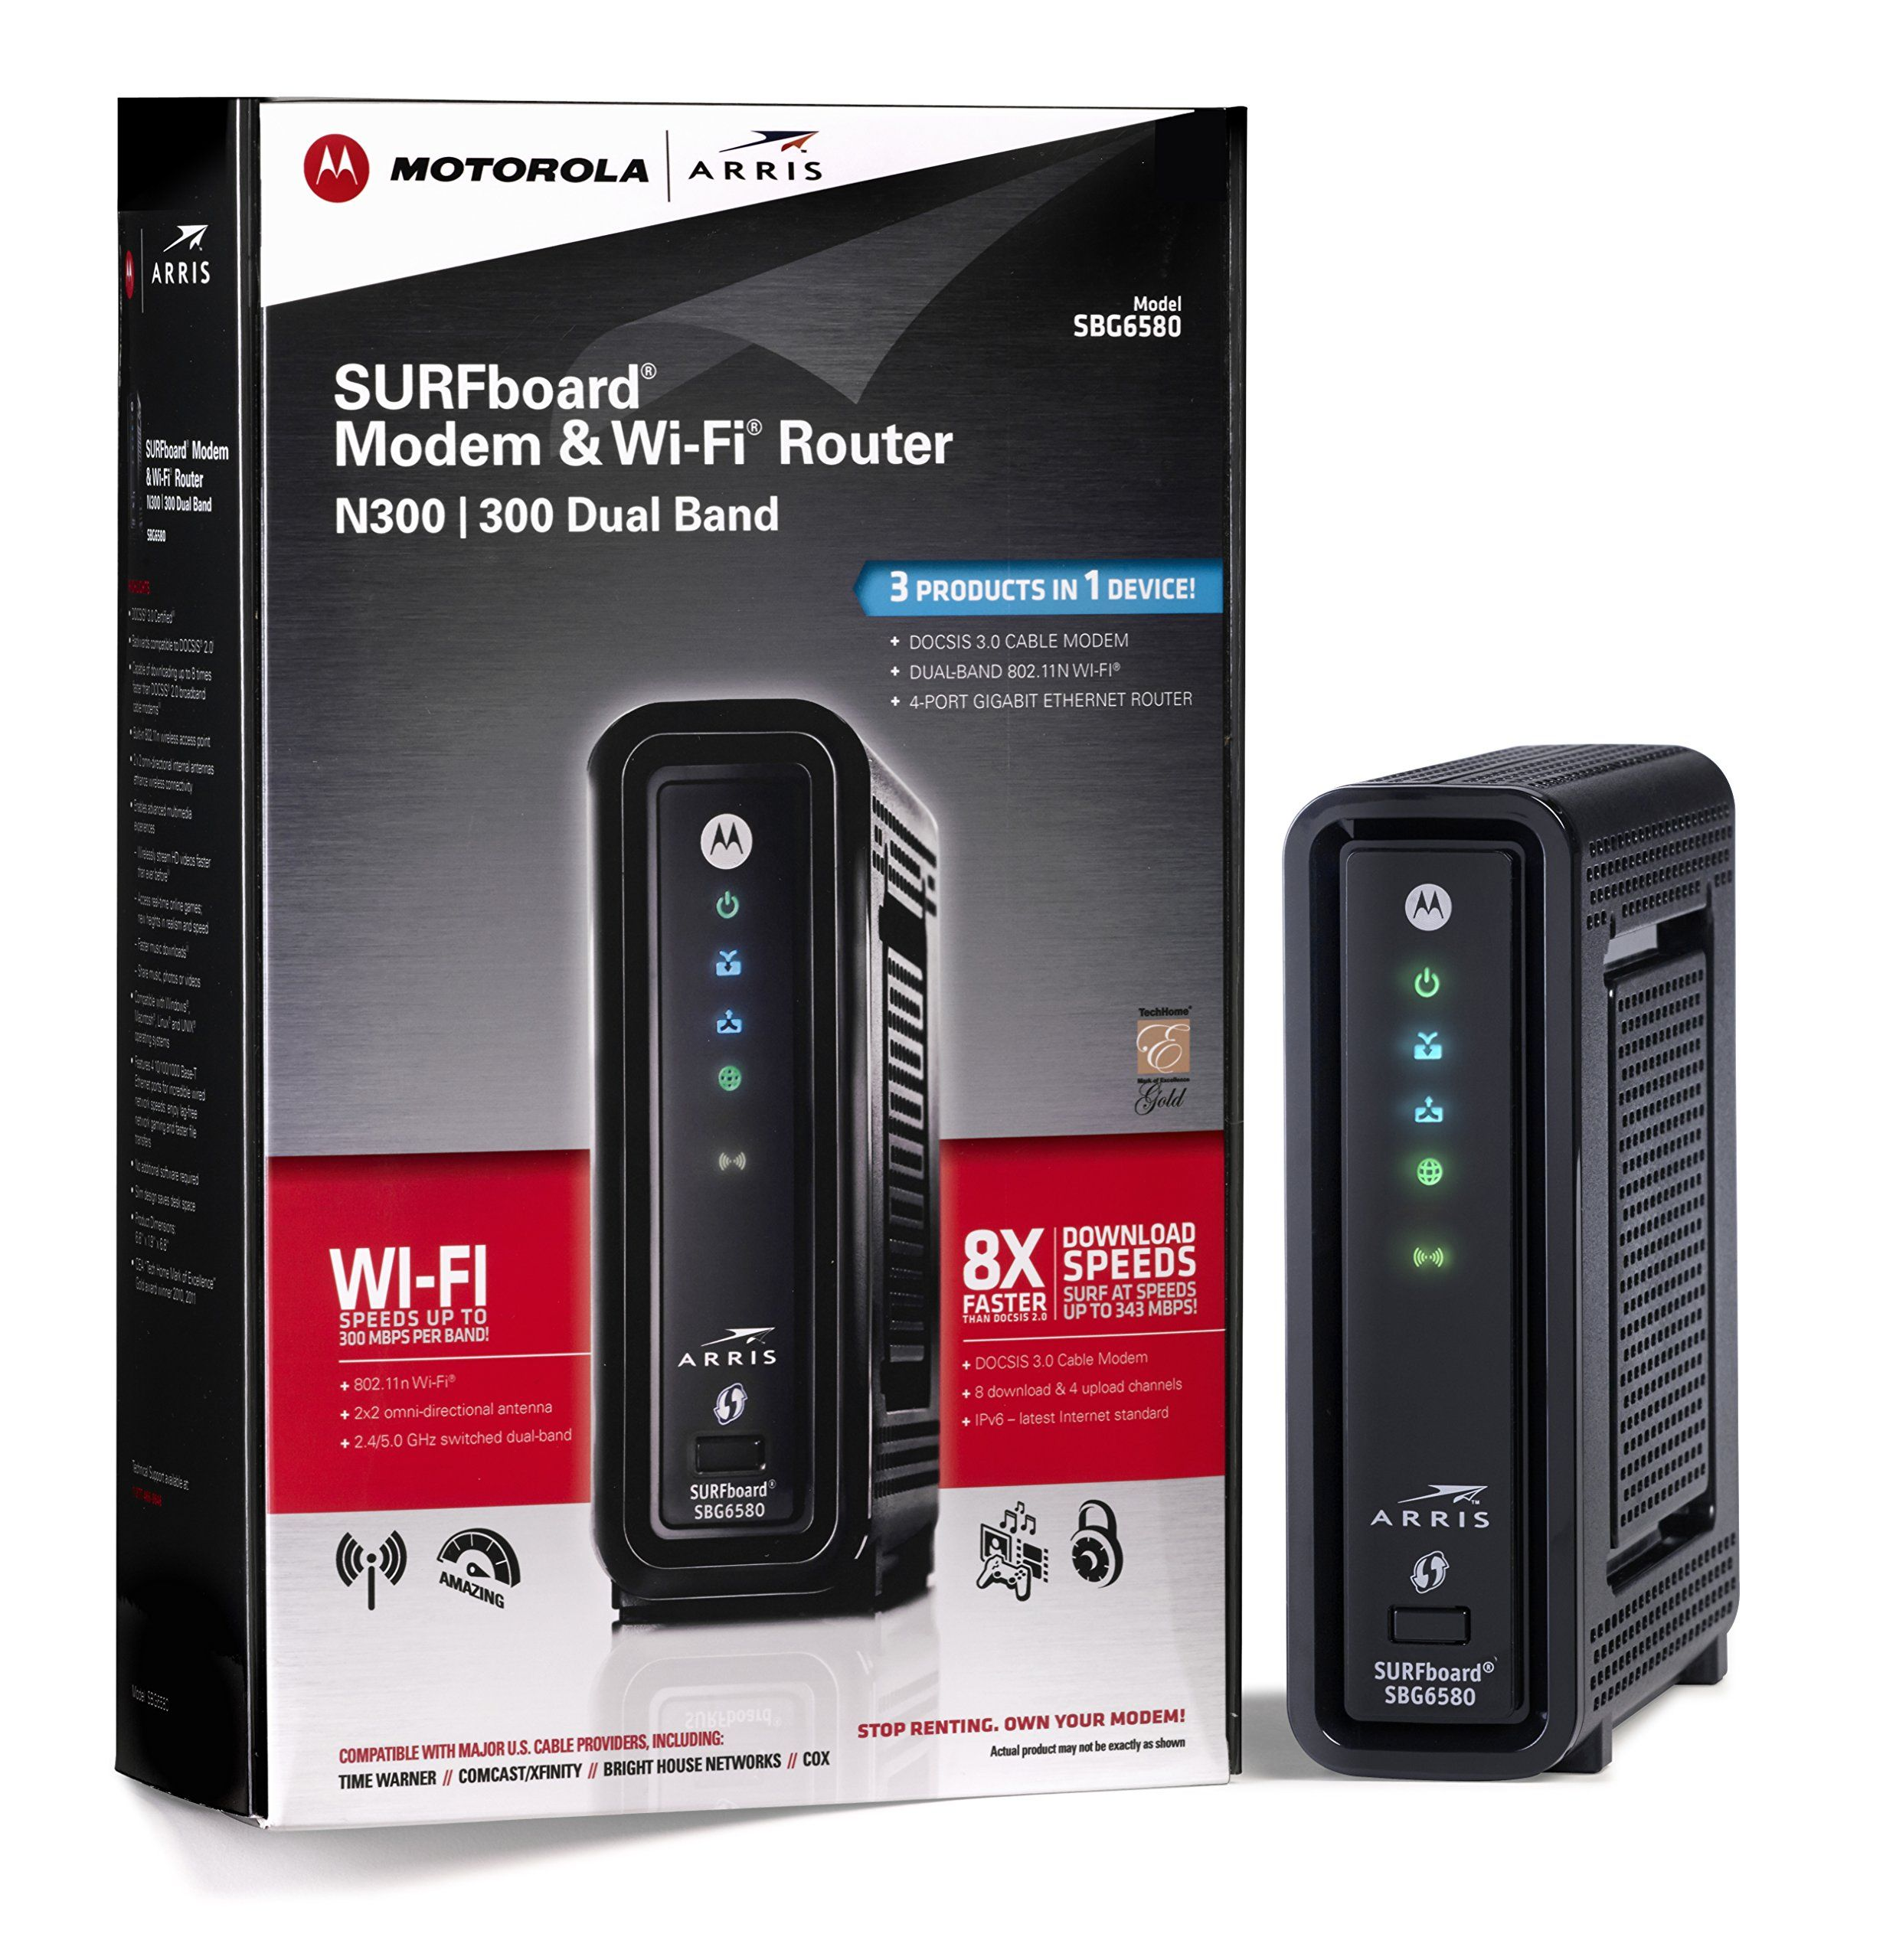 Arris Surfboard Sbg6580 Docsis 3 0 Cable Modem Wi Fi N Router Retail Packaging Black Modem Router Cable Modem Dual Band Router